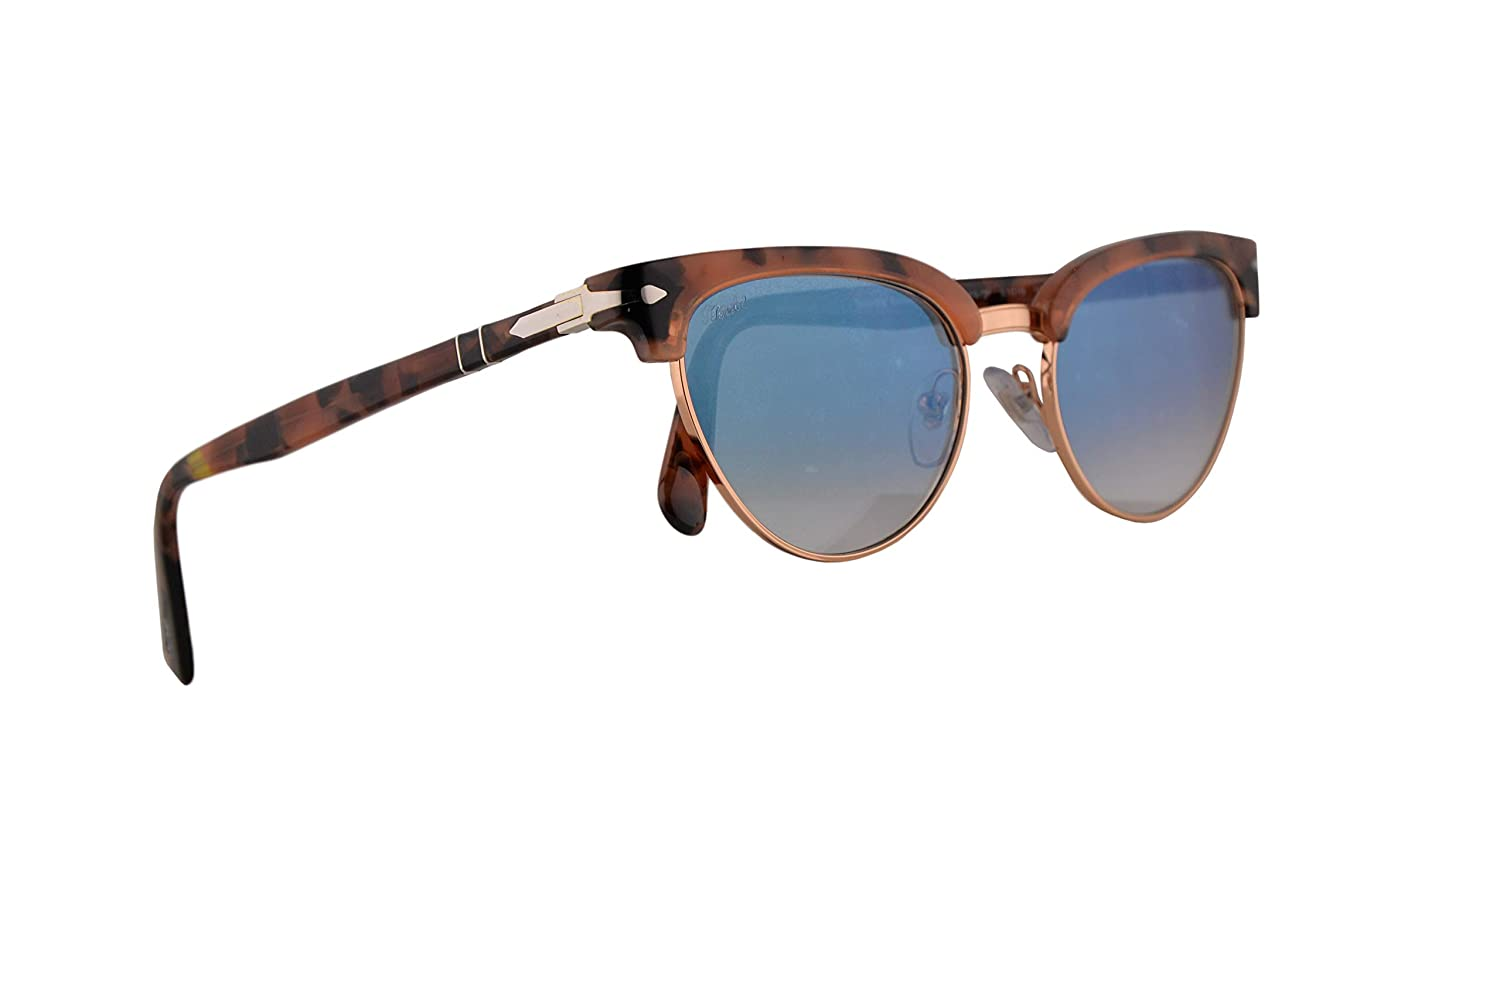 cb57ae51f7 Amazon.com  Persol PO3198S Tailoring Edition Sunglasses Tortoise Pink  w Blue Gradient 51mm Lens 10693F PO 3198S PO 3198-S PO3198-S  Clothing